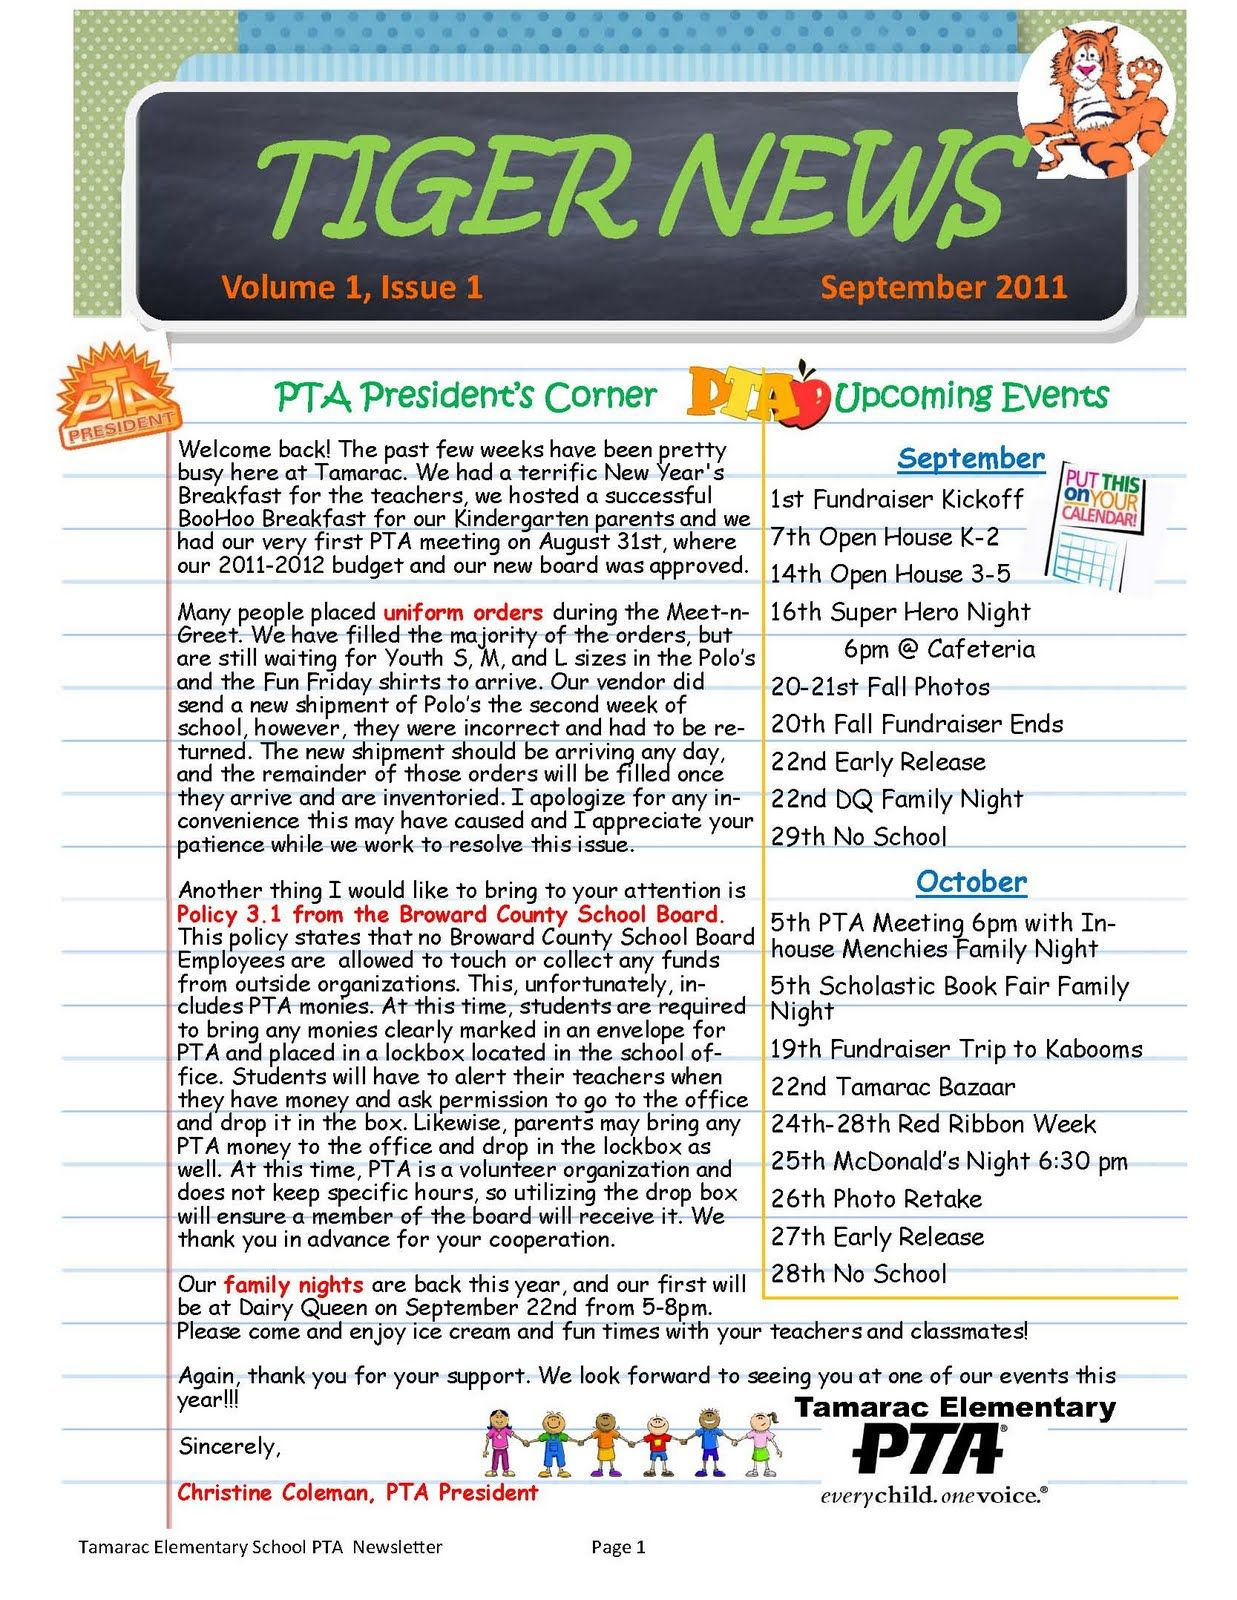 1st ever tamarac elementary pta tiger news newsletter pfa